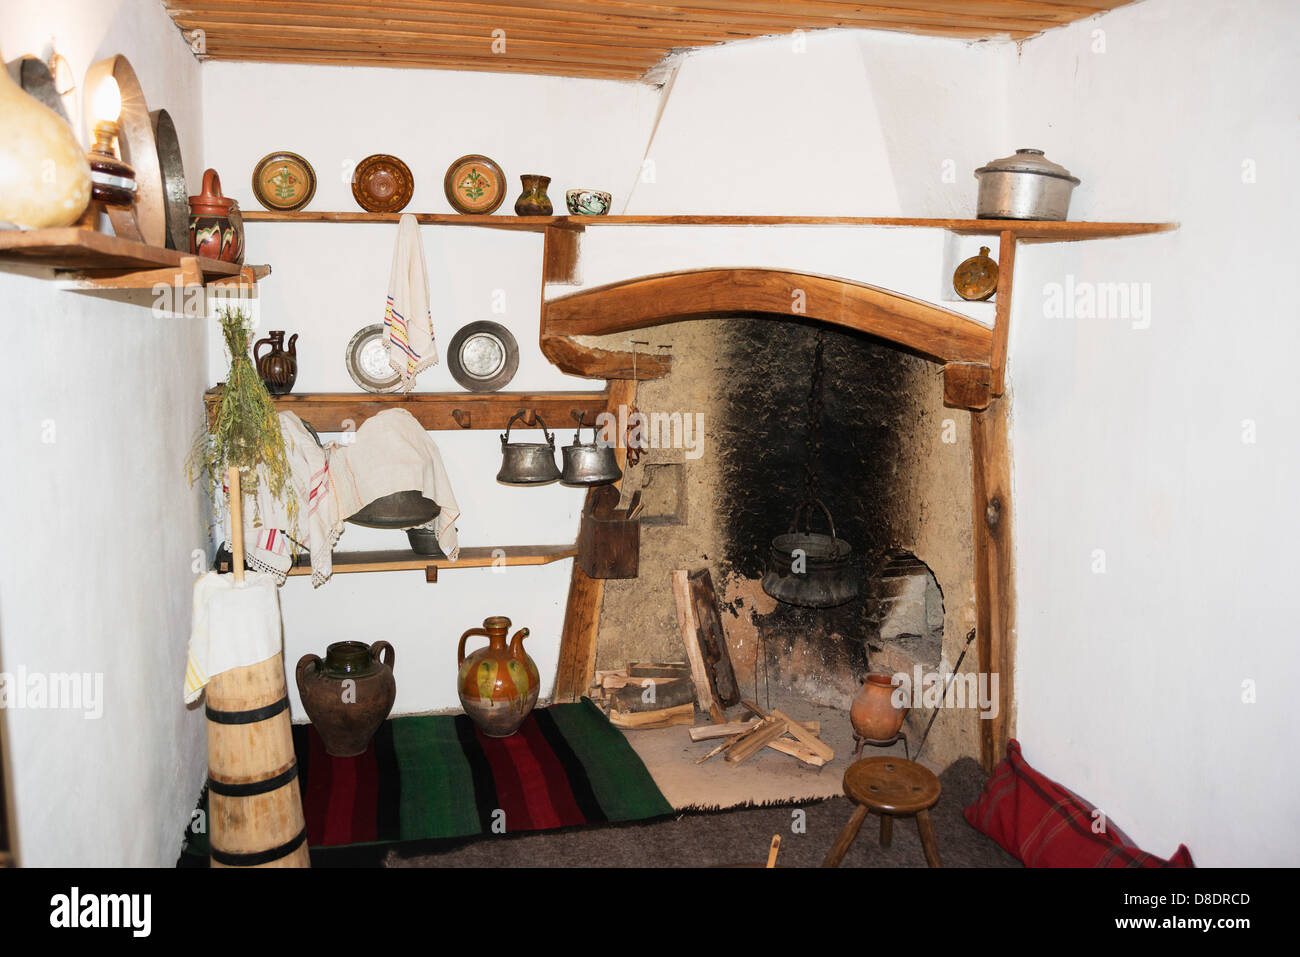 Europe, Bulgaria, Etar Ethnographic Village Museum, kitchen - Stock Image